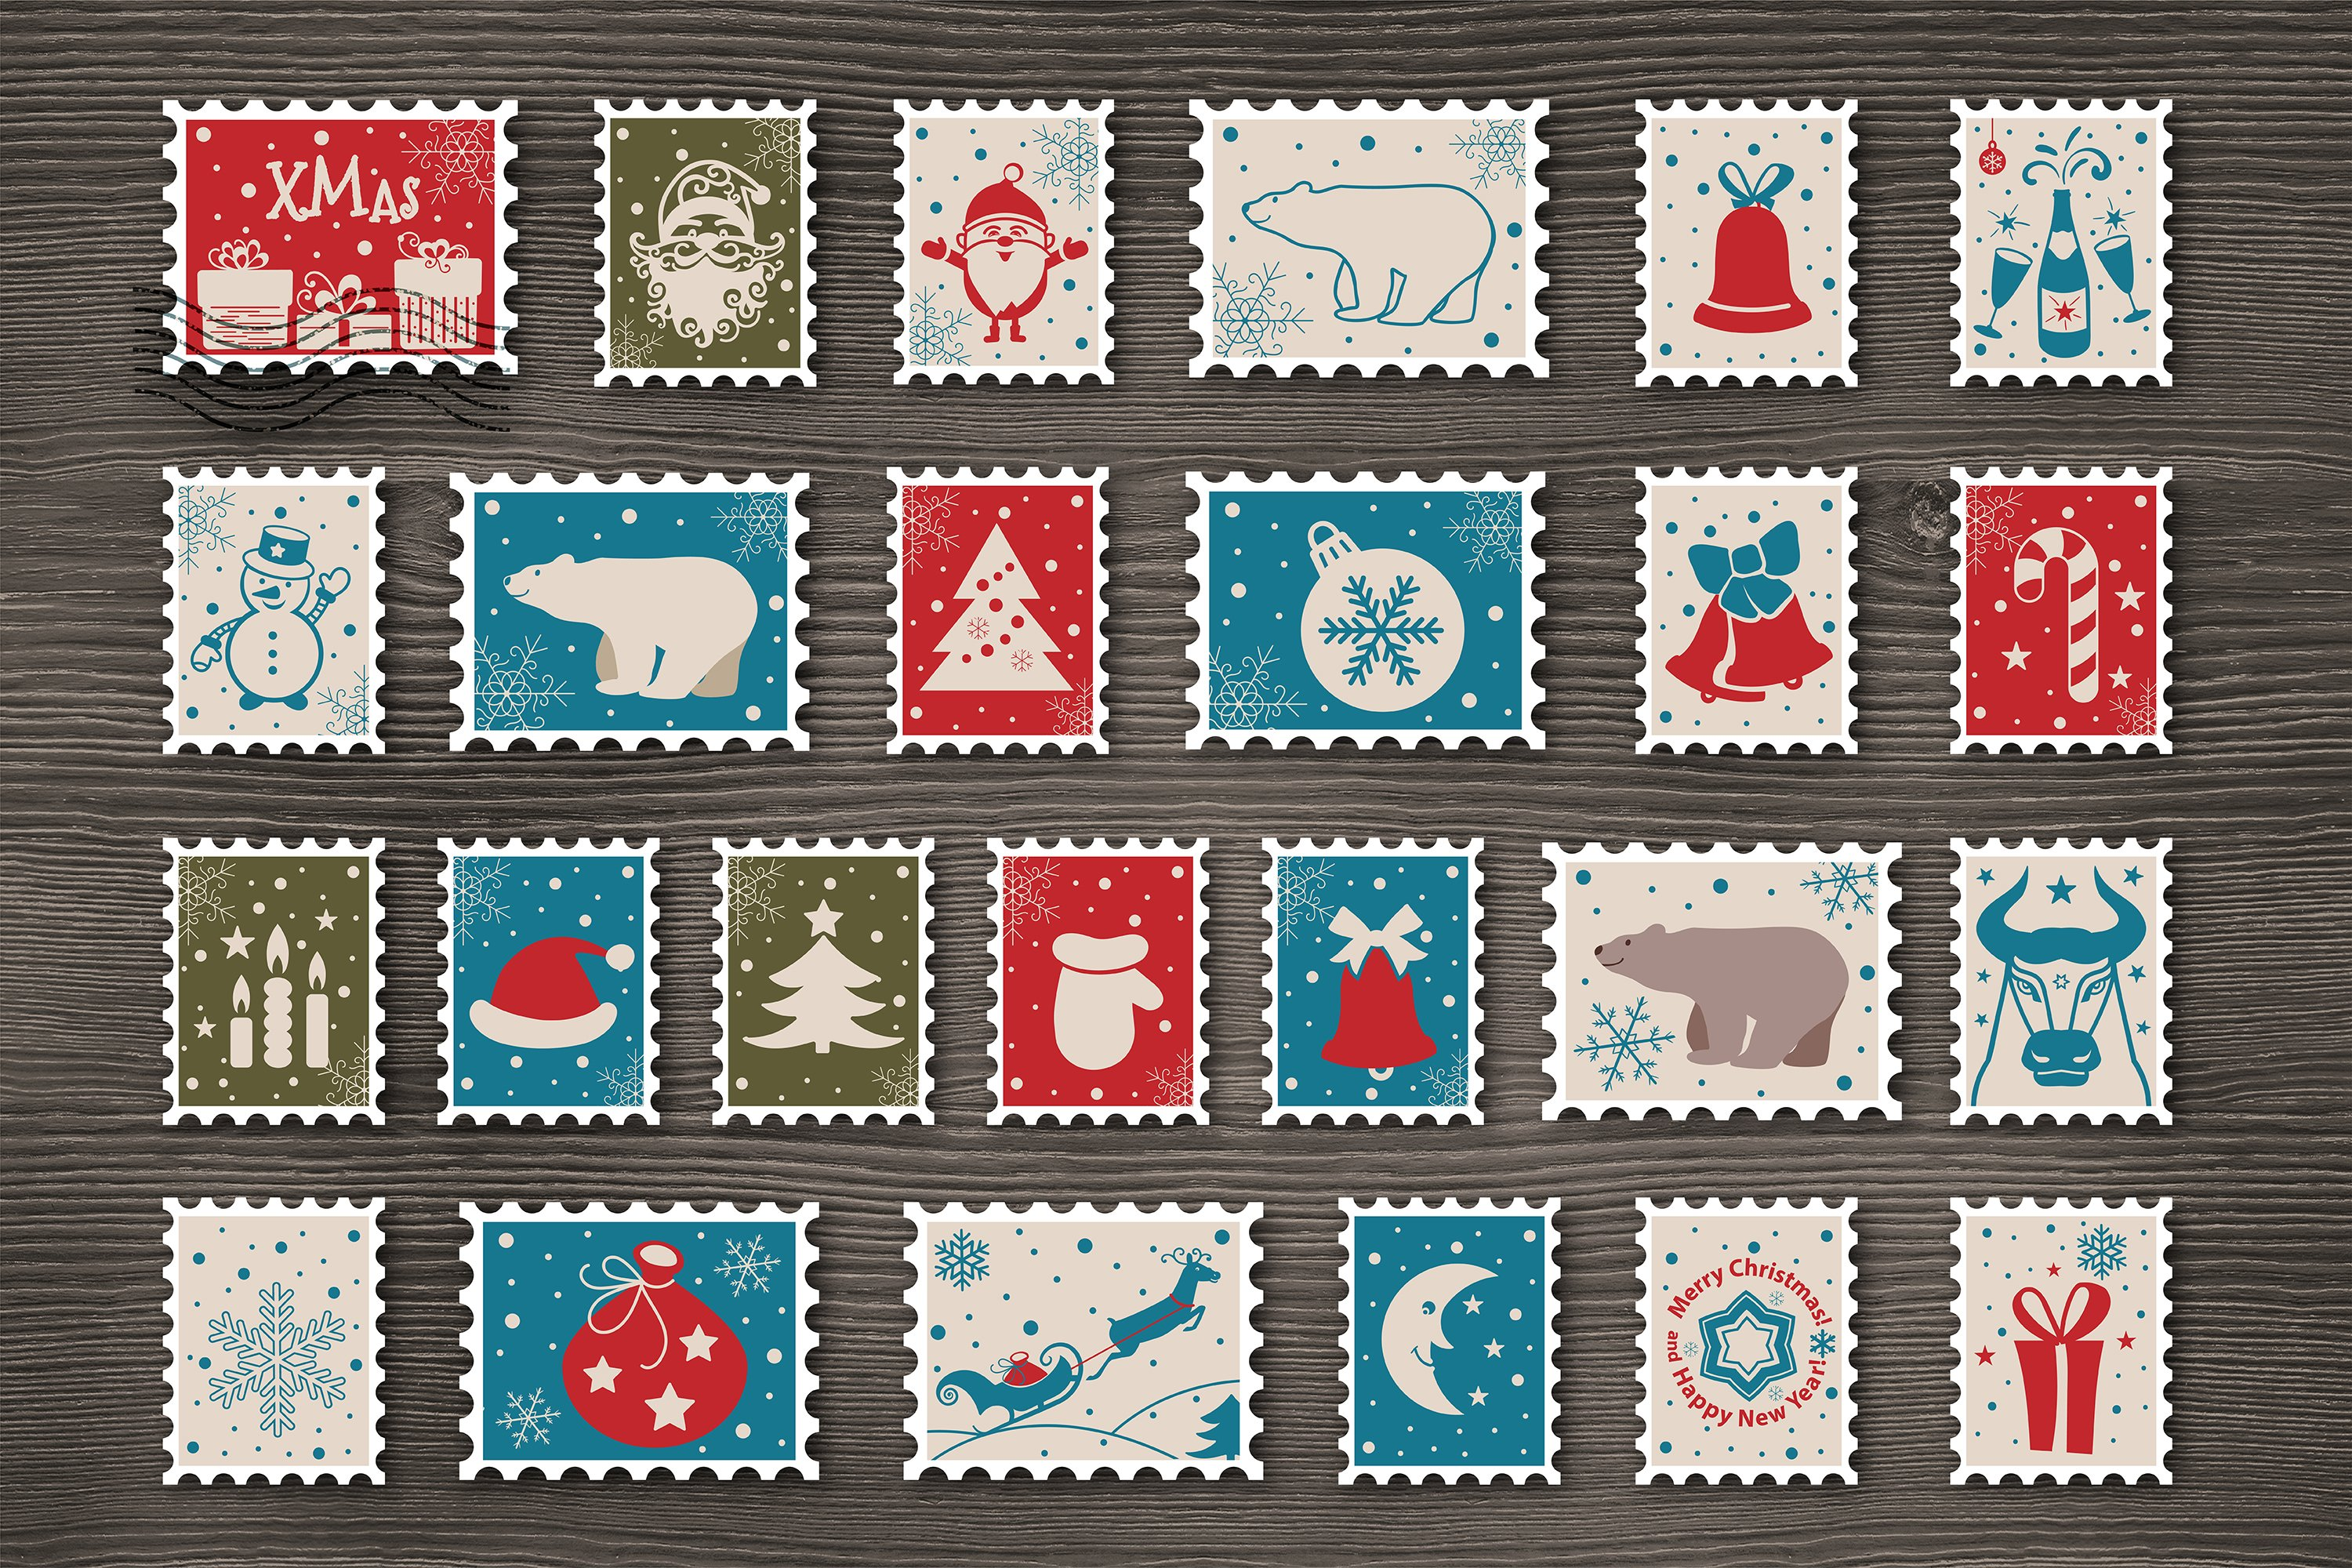 Christmas Postage Stamps With Santa Claus Snowman Deer